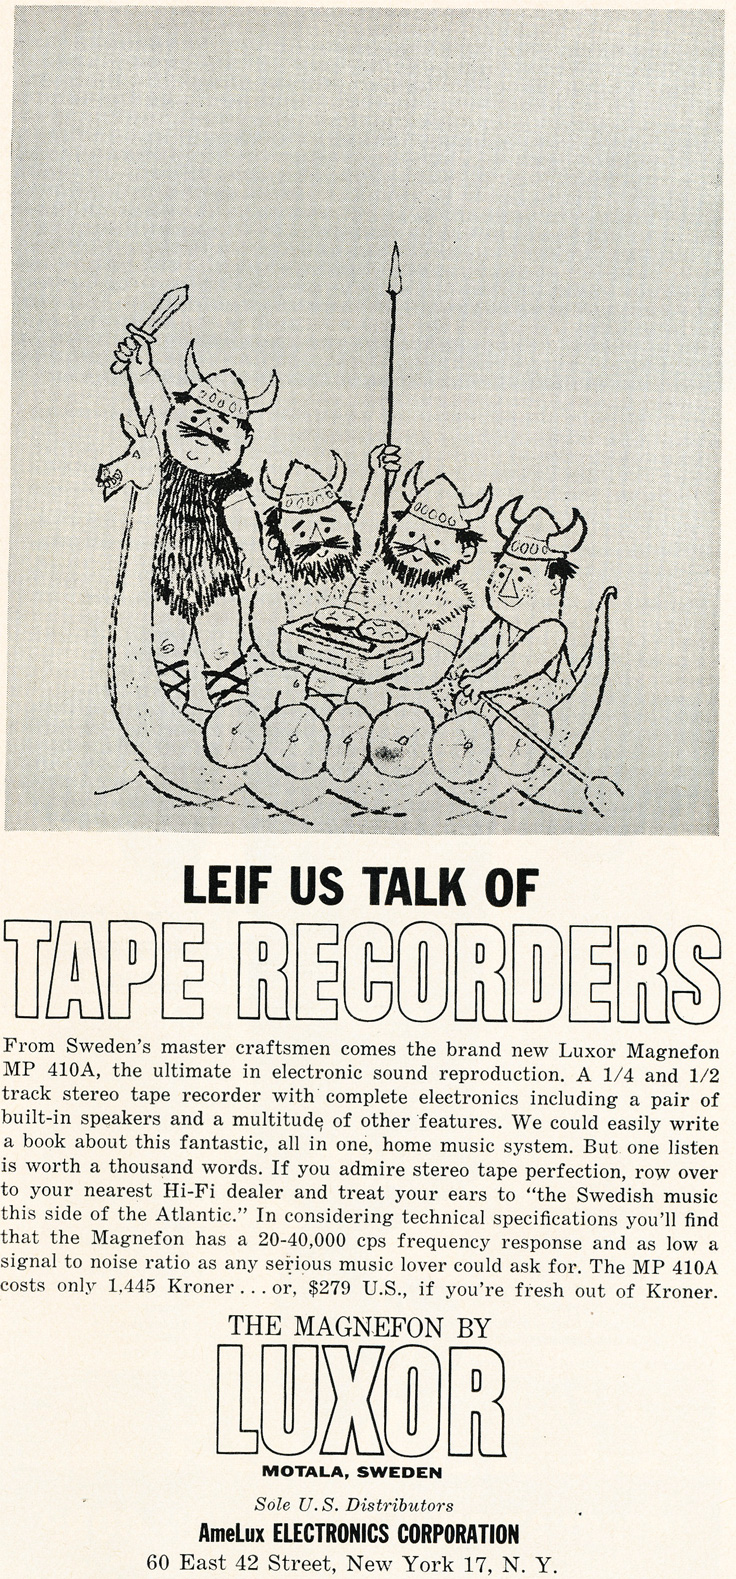 1961 ad for the Luxor reel to reel tape recorder in Phantom Productions' vintage recording collection